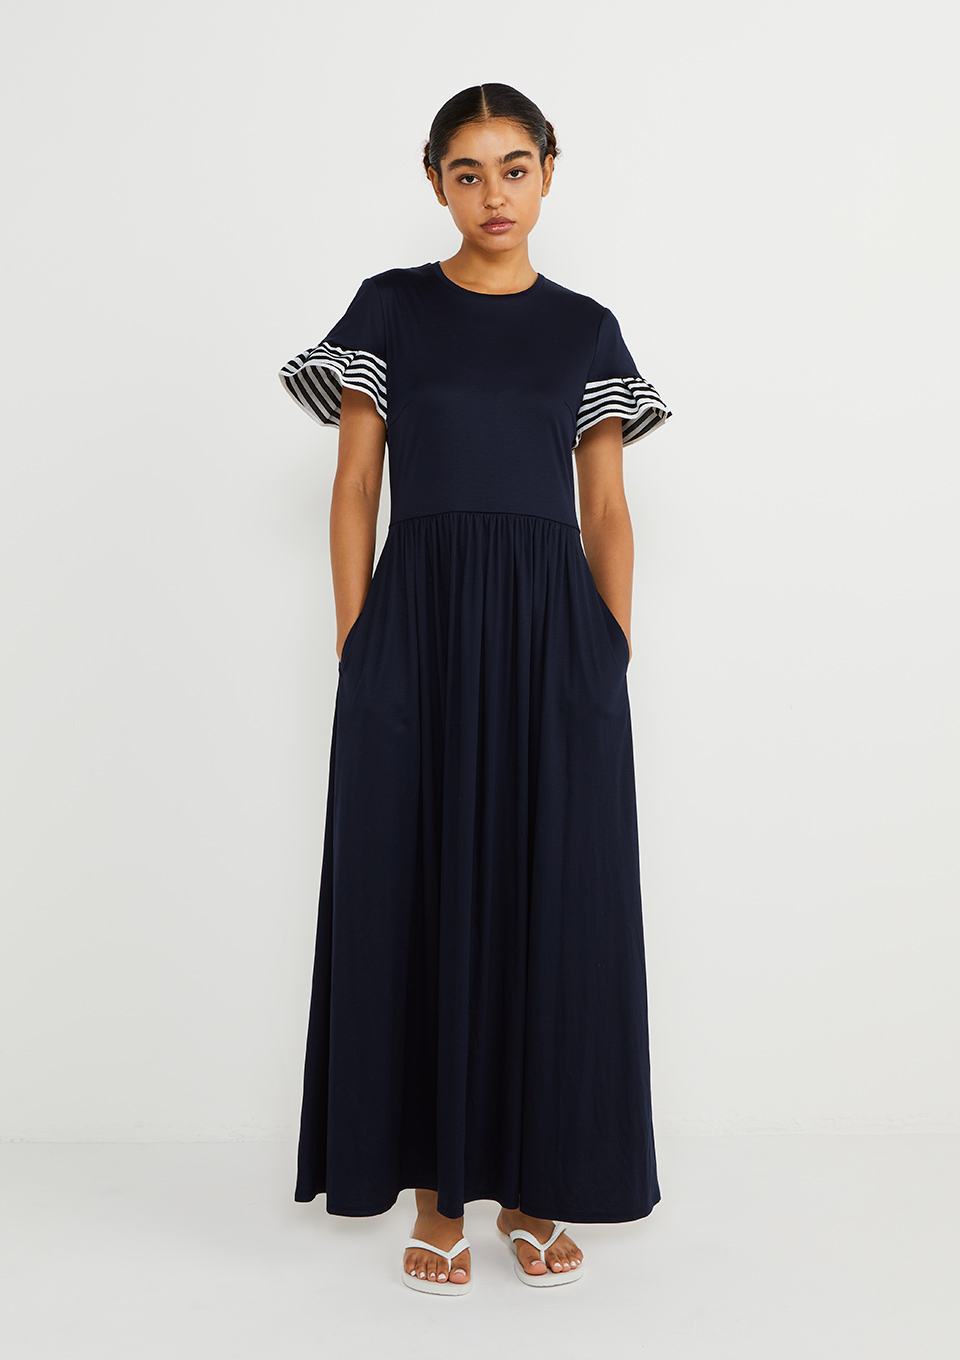 RUFFLED MAXI DRESS